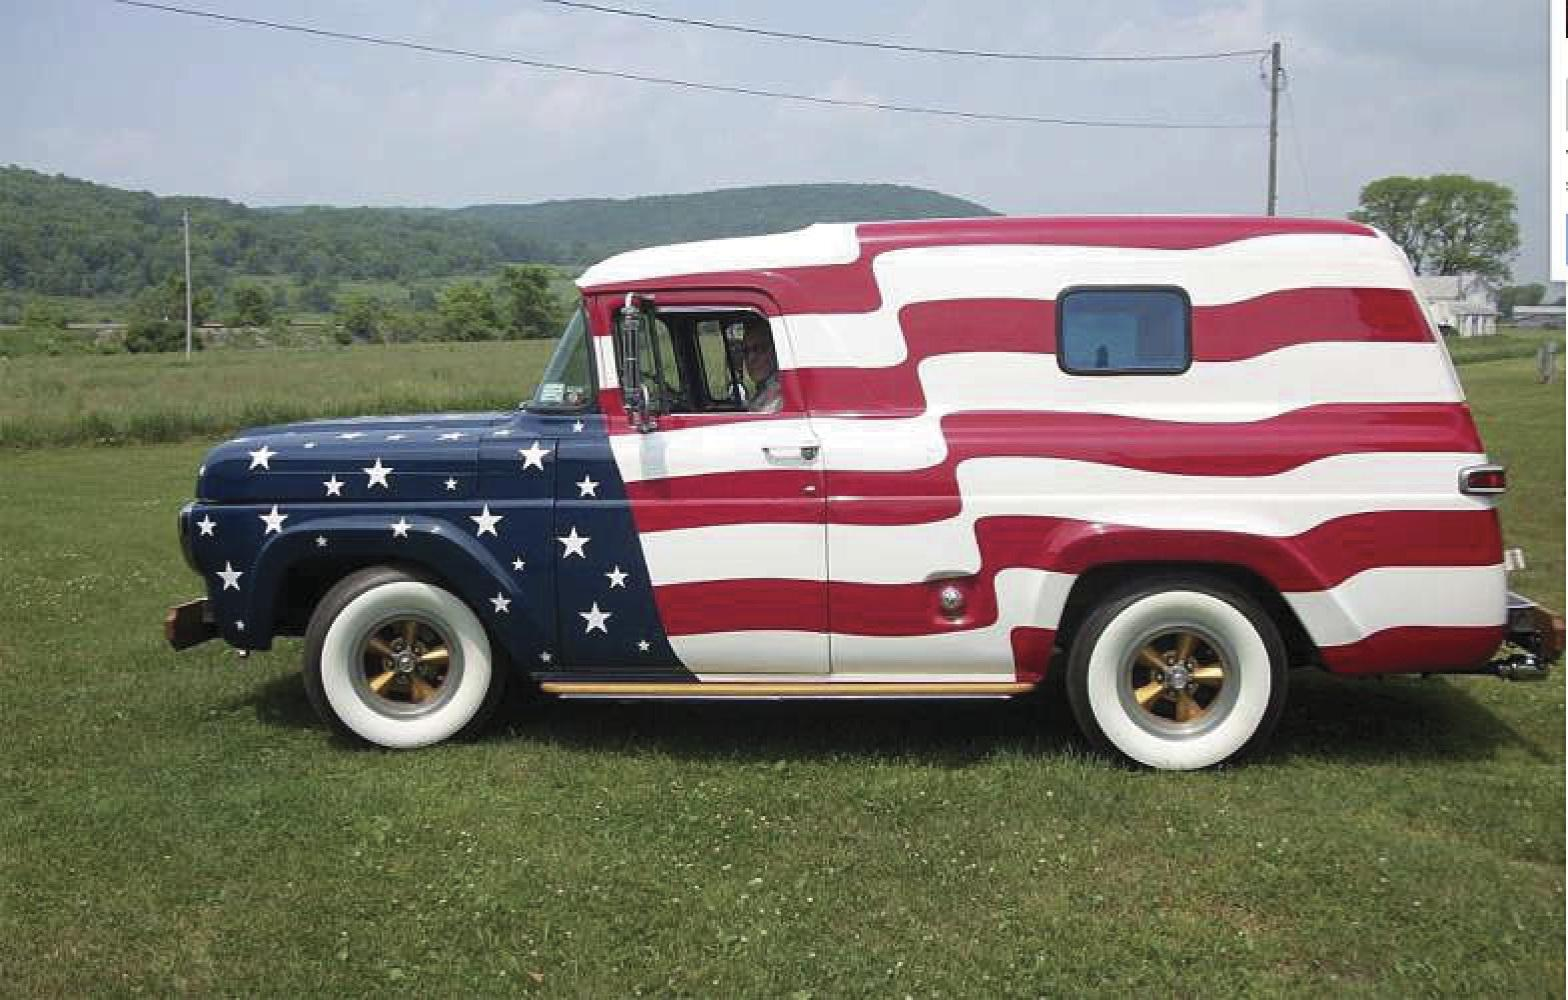 Patriotic Ford panel truck shines at Independence Day parades